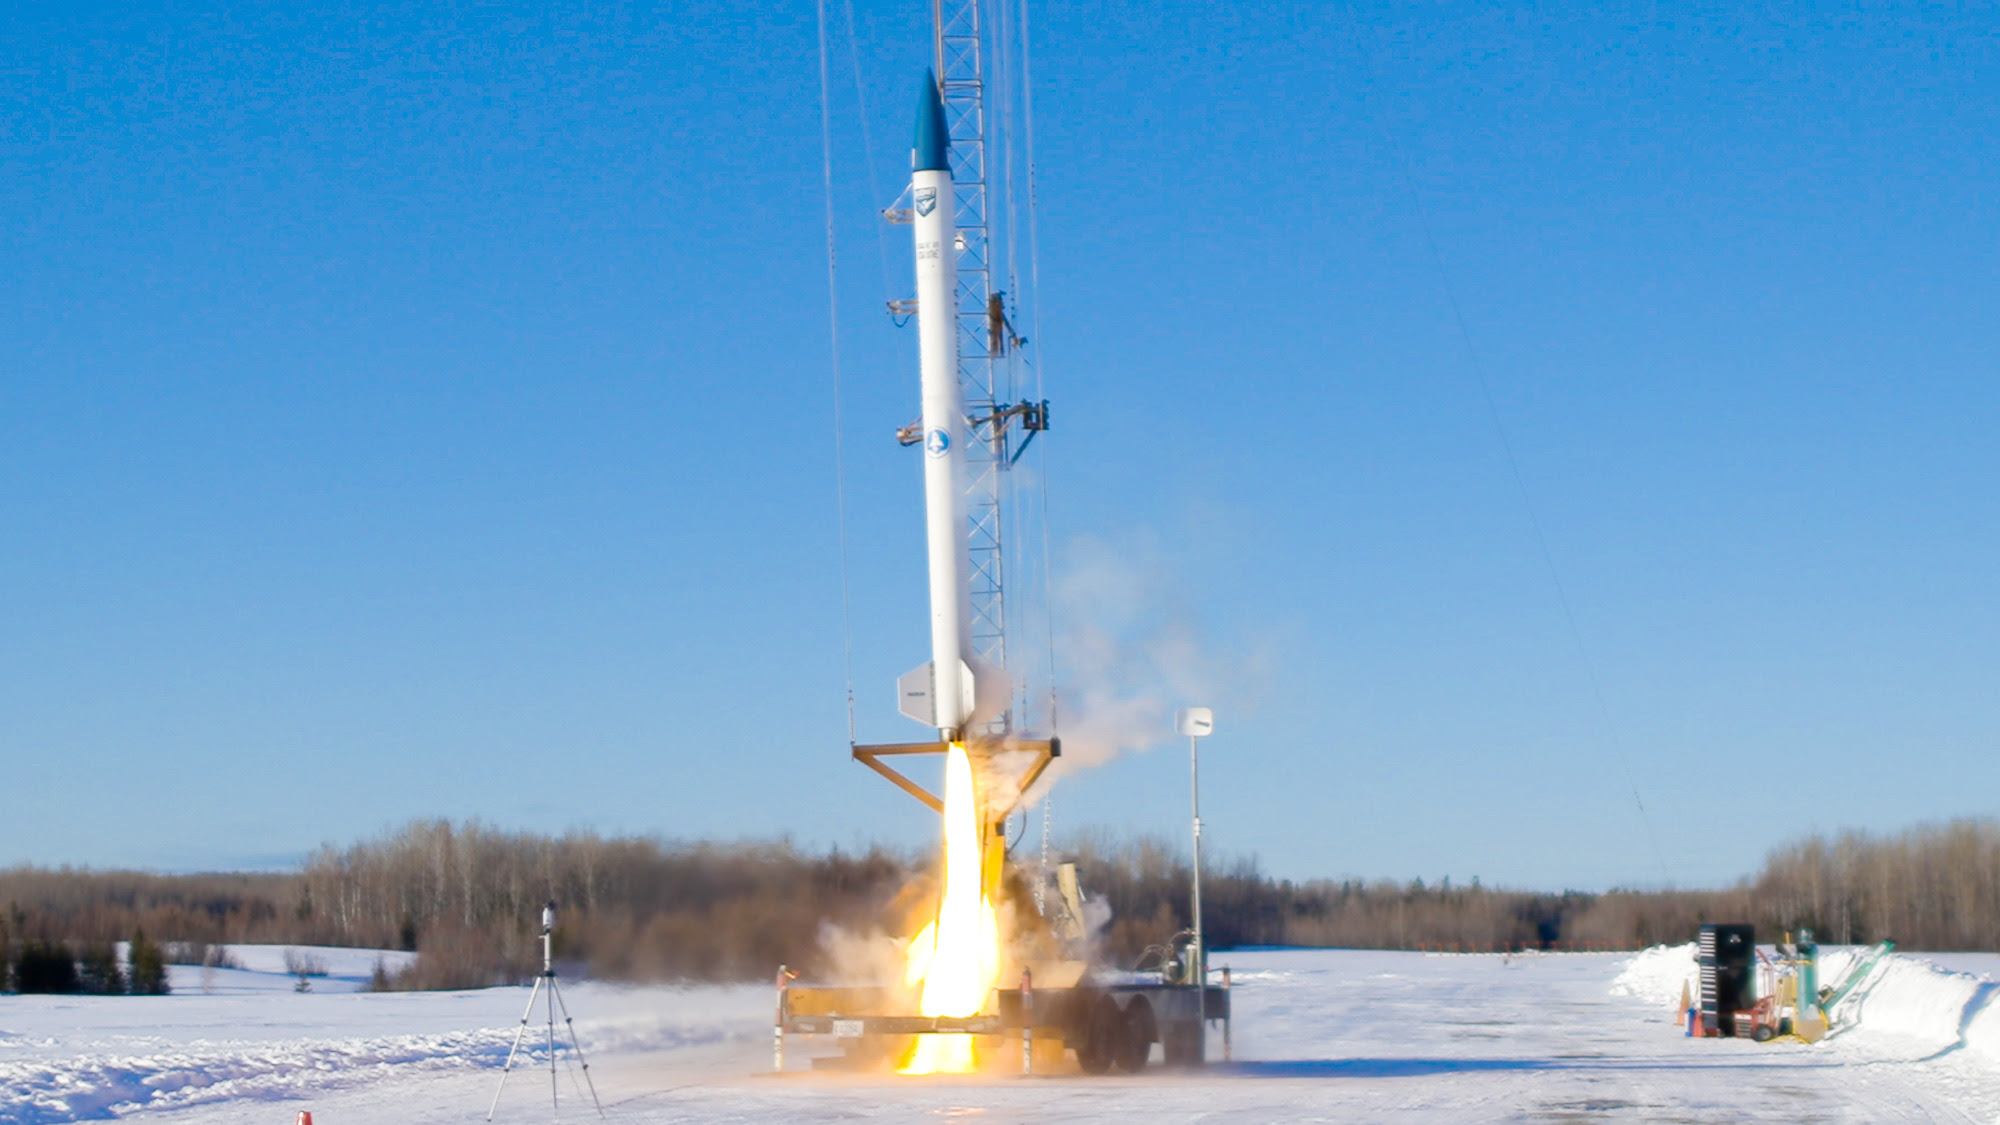 Startup bluShift Aerospace launches its 1st commercial biofuel rocket from Maine #rwanda #RwOT